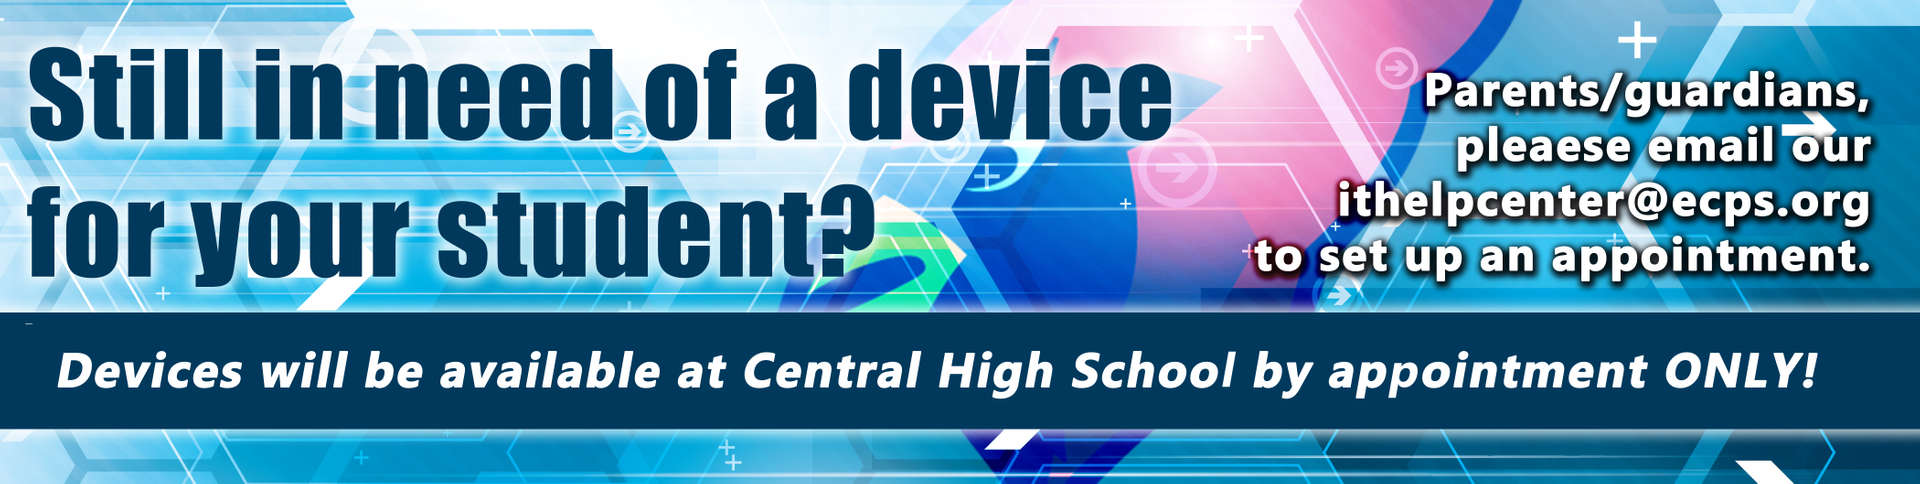 Still need a device for you student?